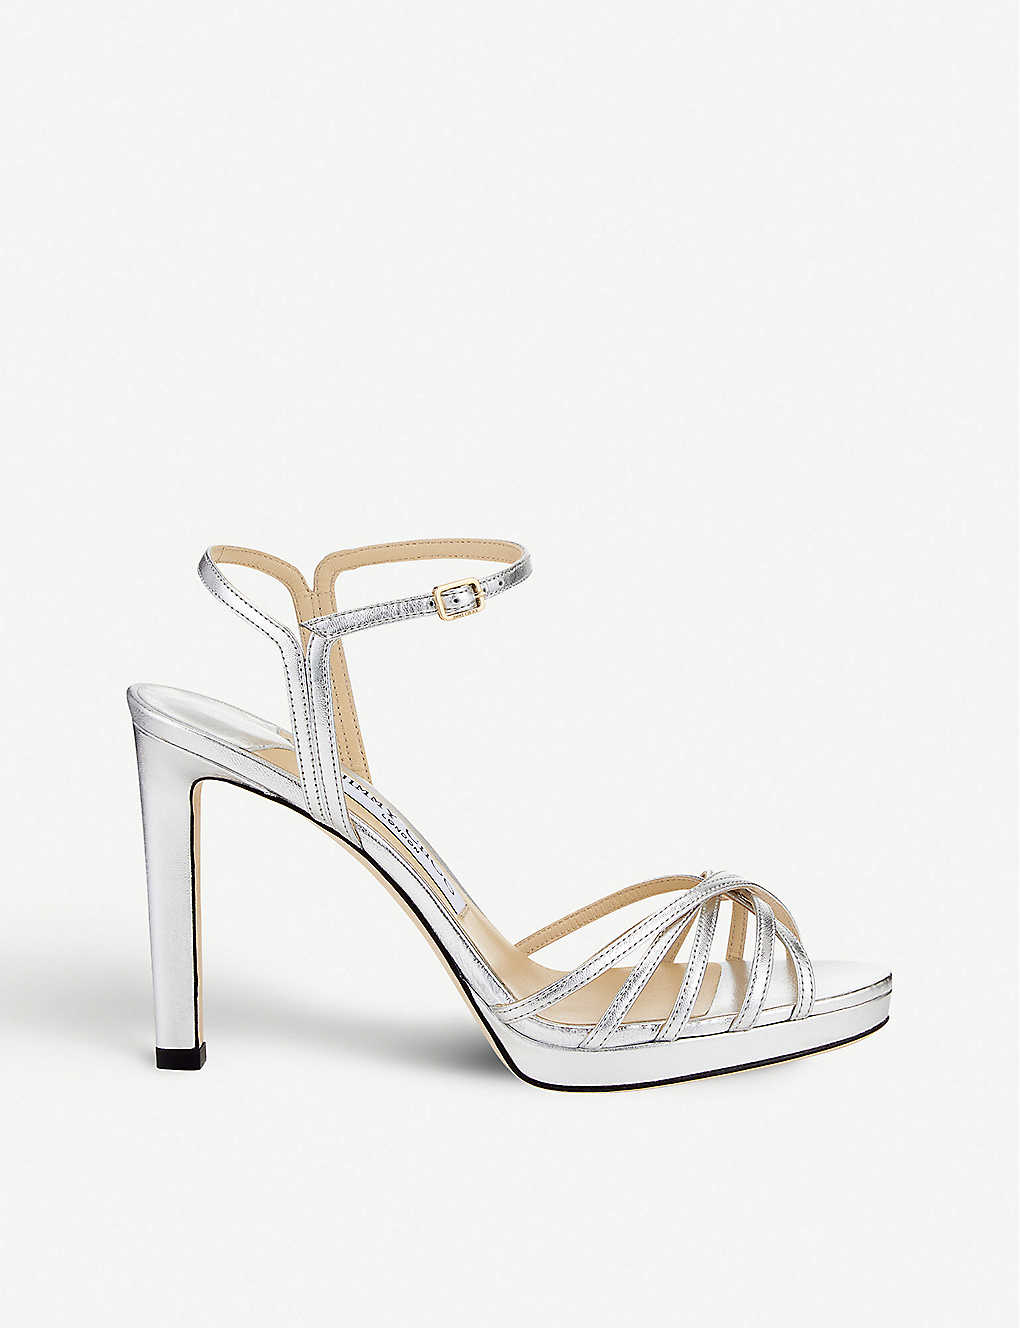 2d667ad27c JIMMY CHOO - Lilah 100 leather heeled sandals | Selfridges.com